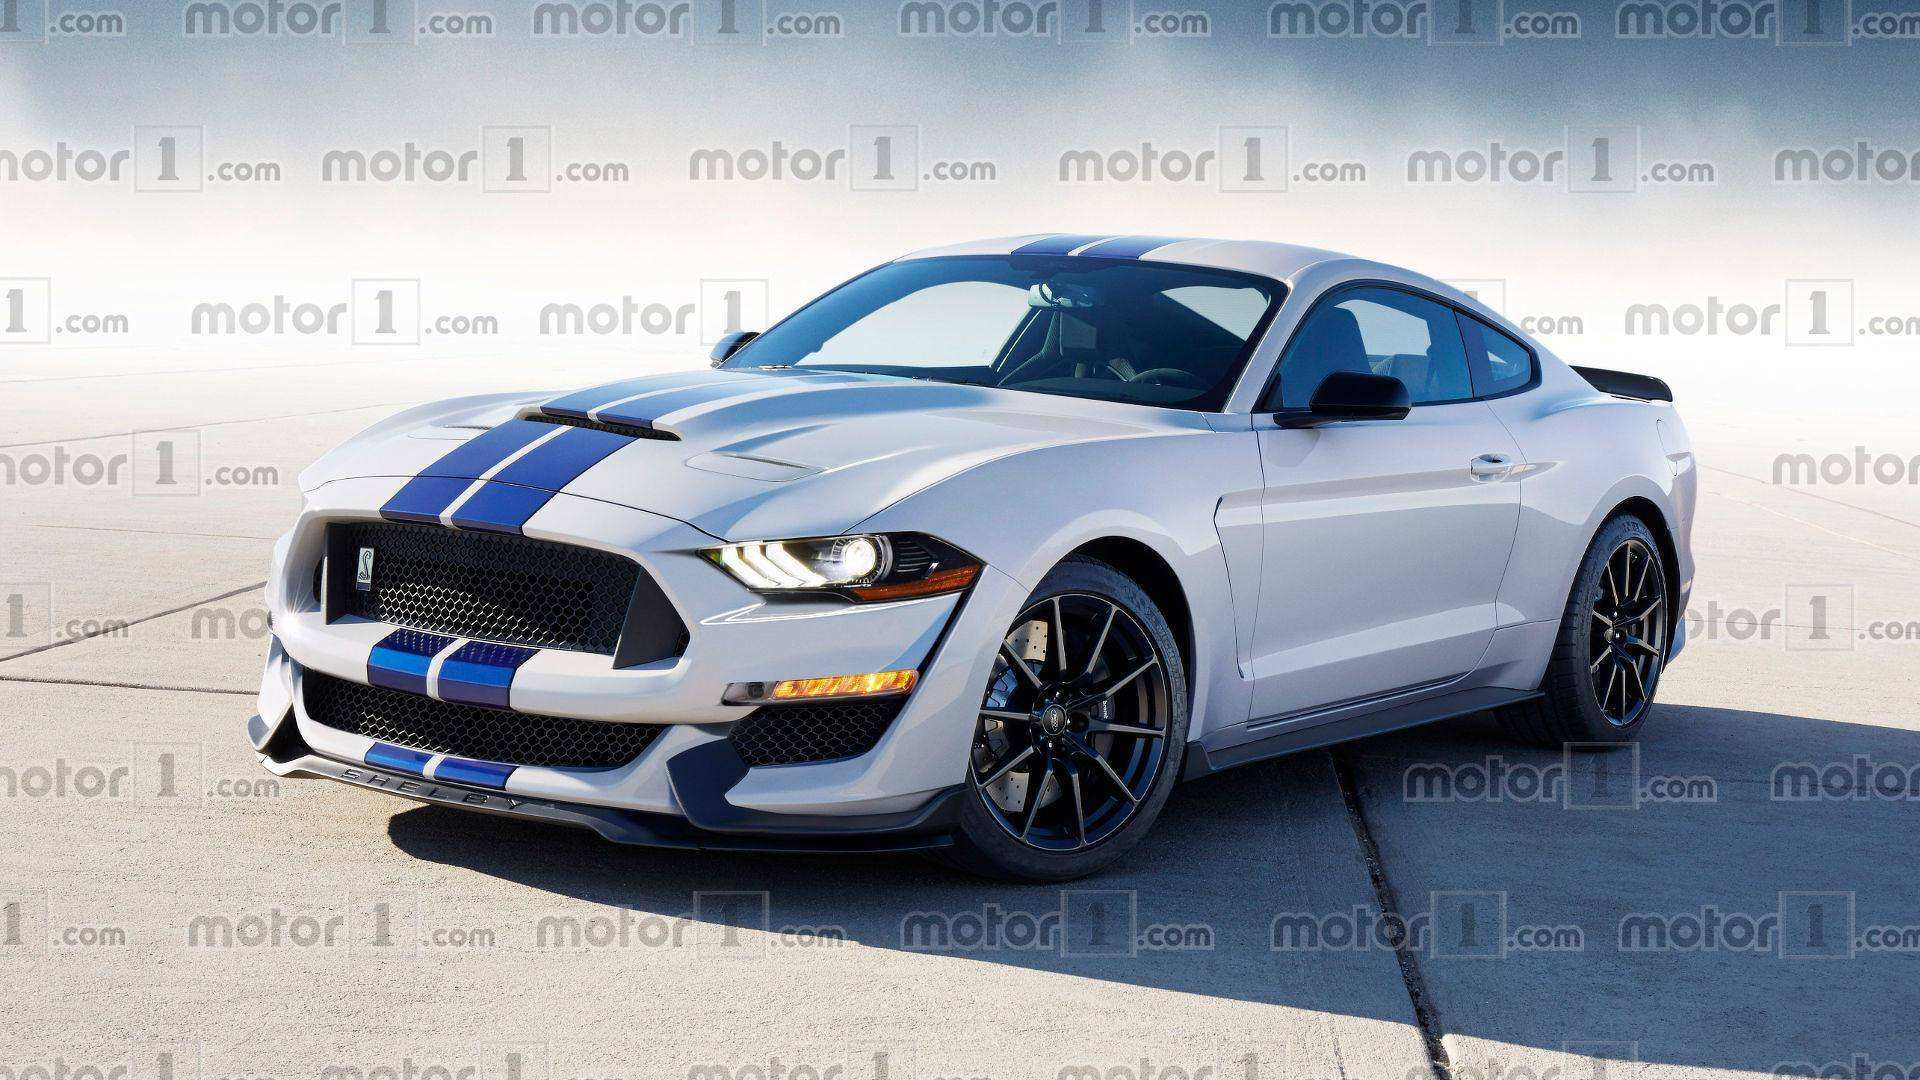 63 The Best 2019 Ford Shelby Gt500 Photos